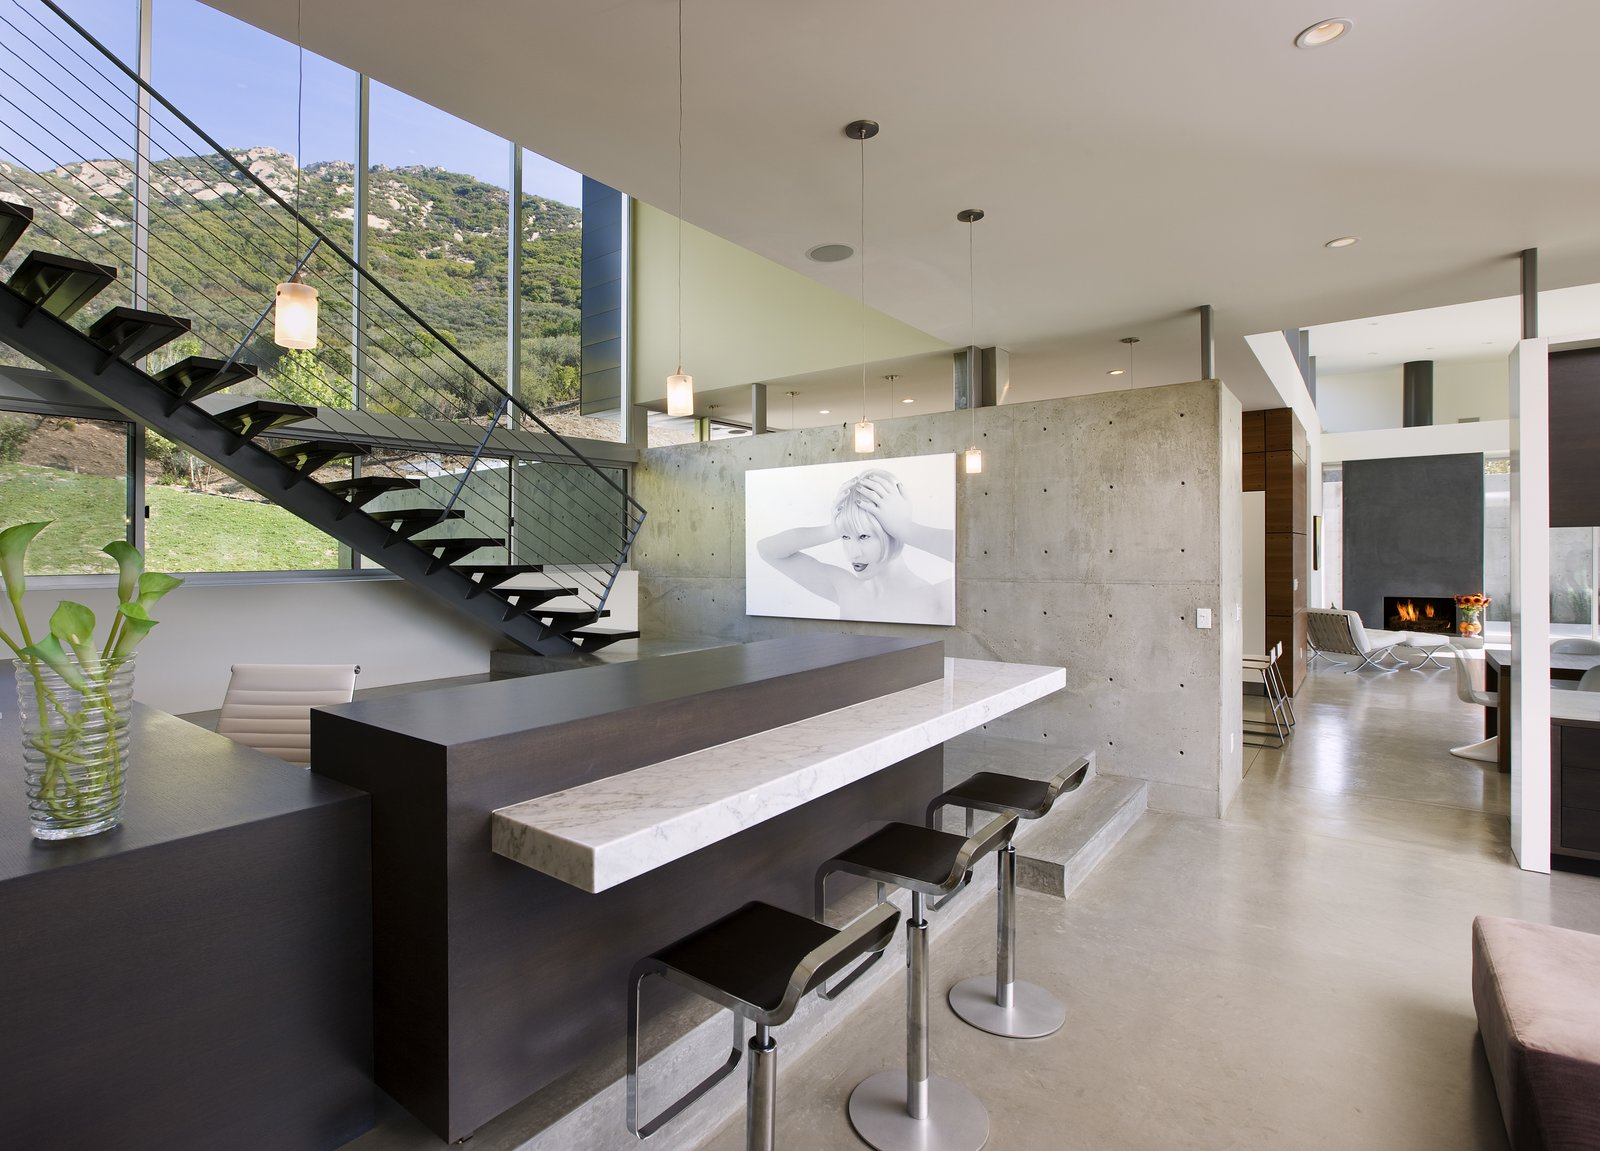 Concrete walls add an industrial touch to the polished home.   Lima Residence by Abramson Teiger Architects